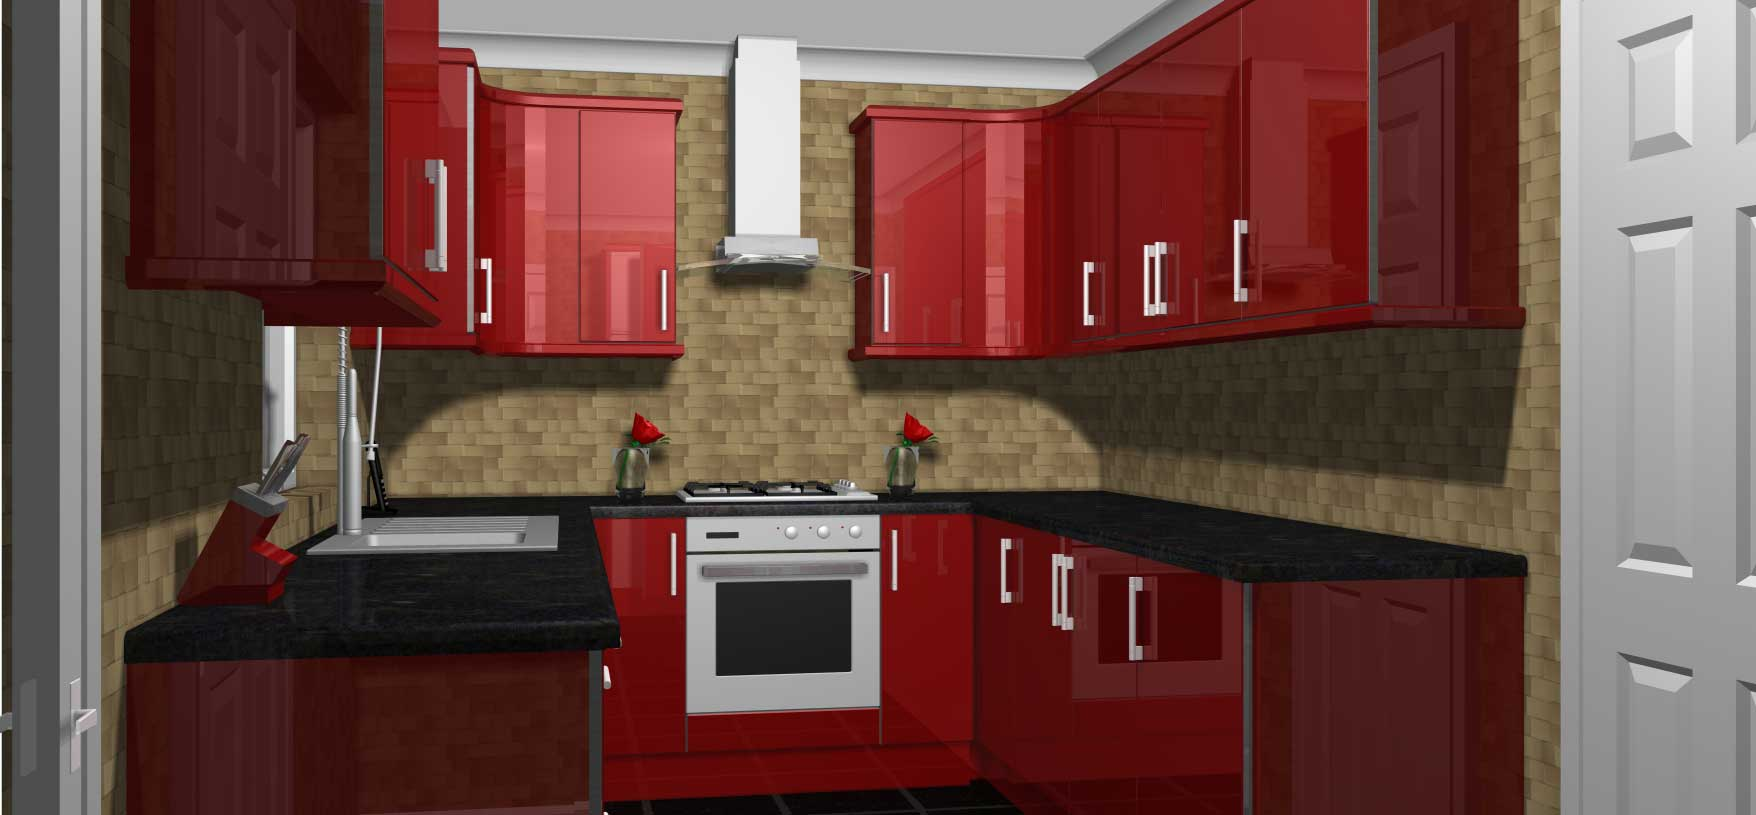 Articad Fitted Bedrooms Fitted Kitchens Sliding Wardrobe Doors Fitted Bathrooms